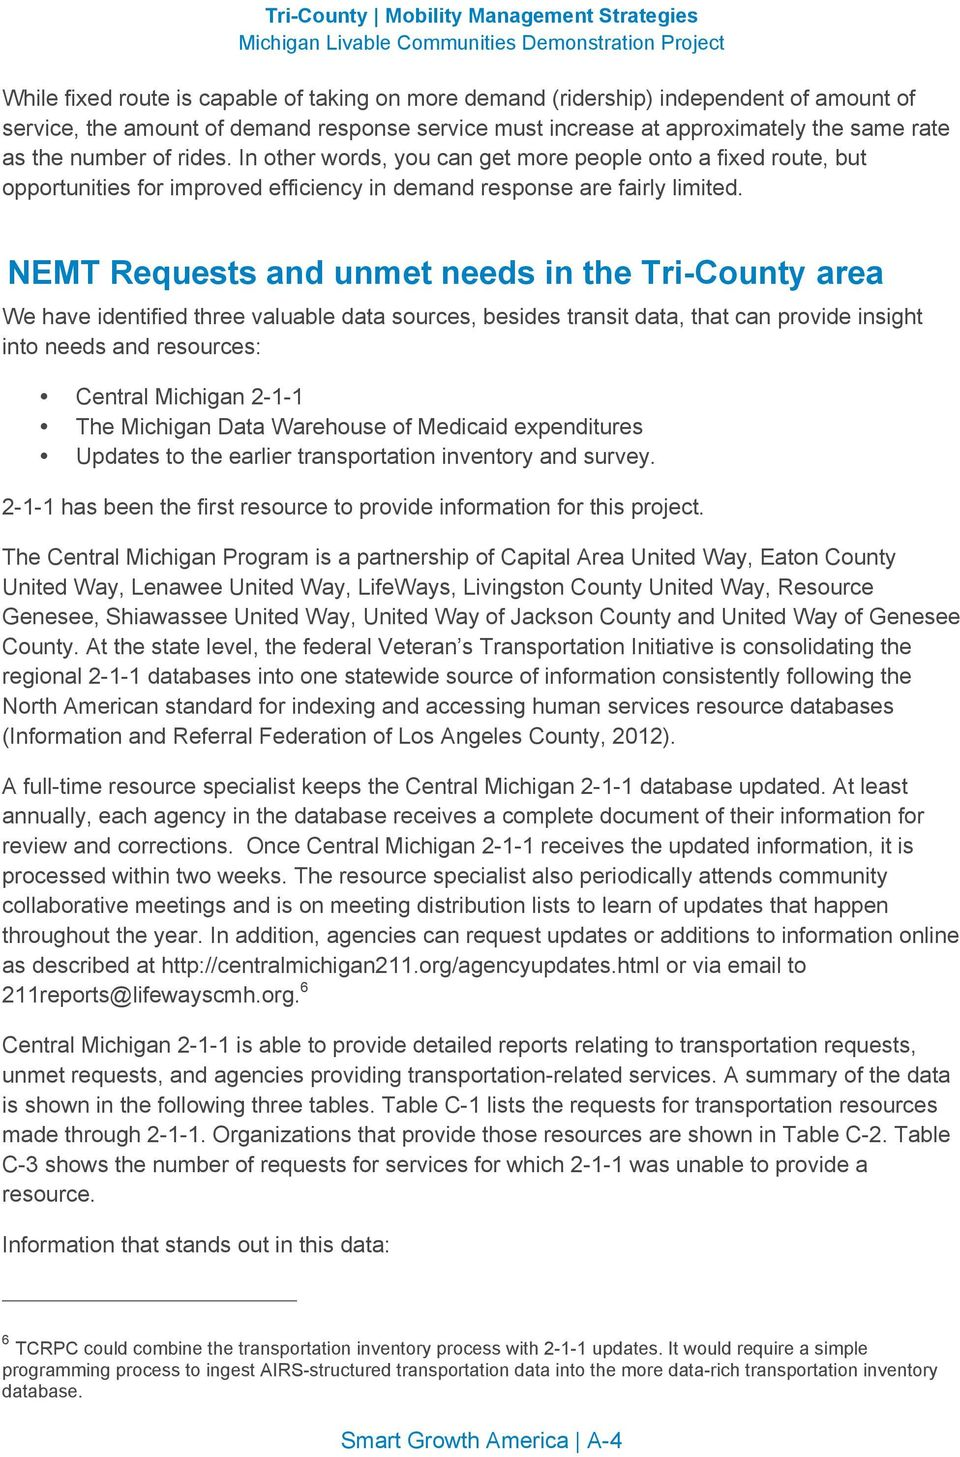 NEMT Requests and unmet needs in the Tri-County area We have identified three valuable data sources, besides transit data, that can provide insight into needs and resources: Central Michigan 2-1-1